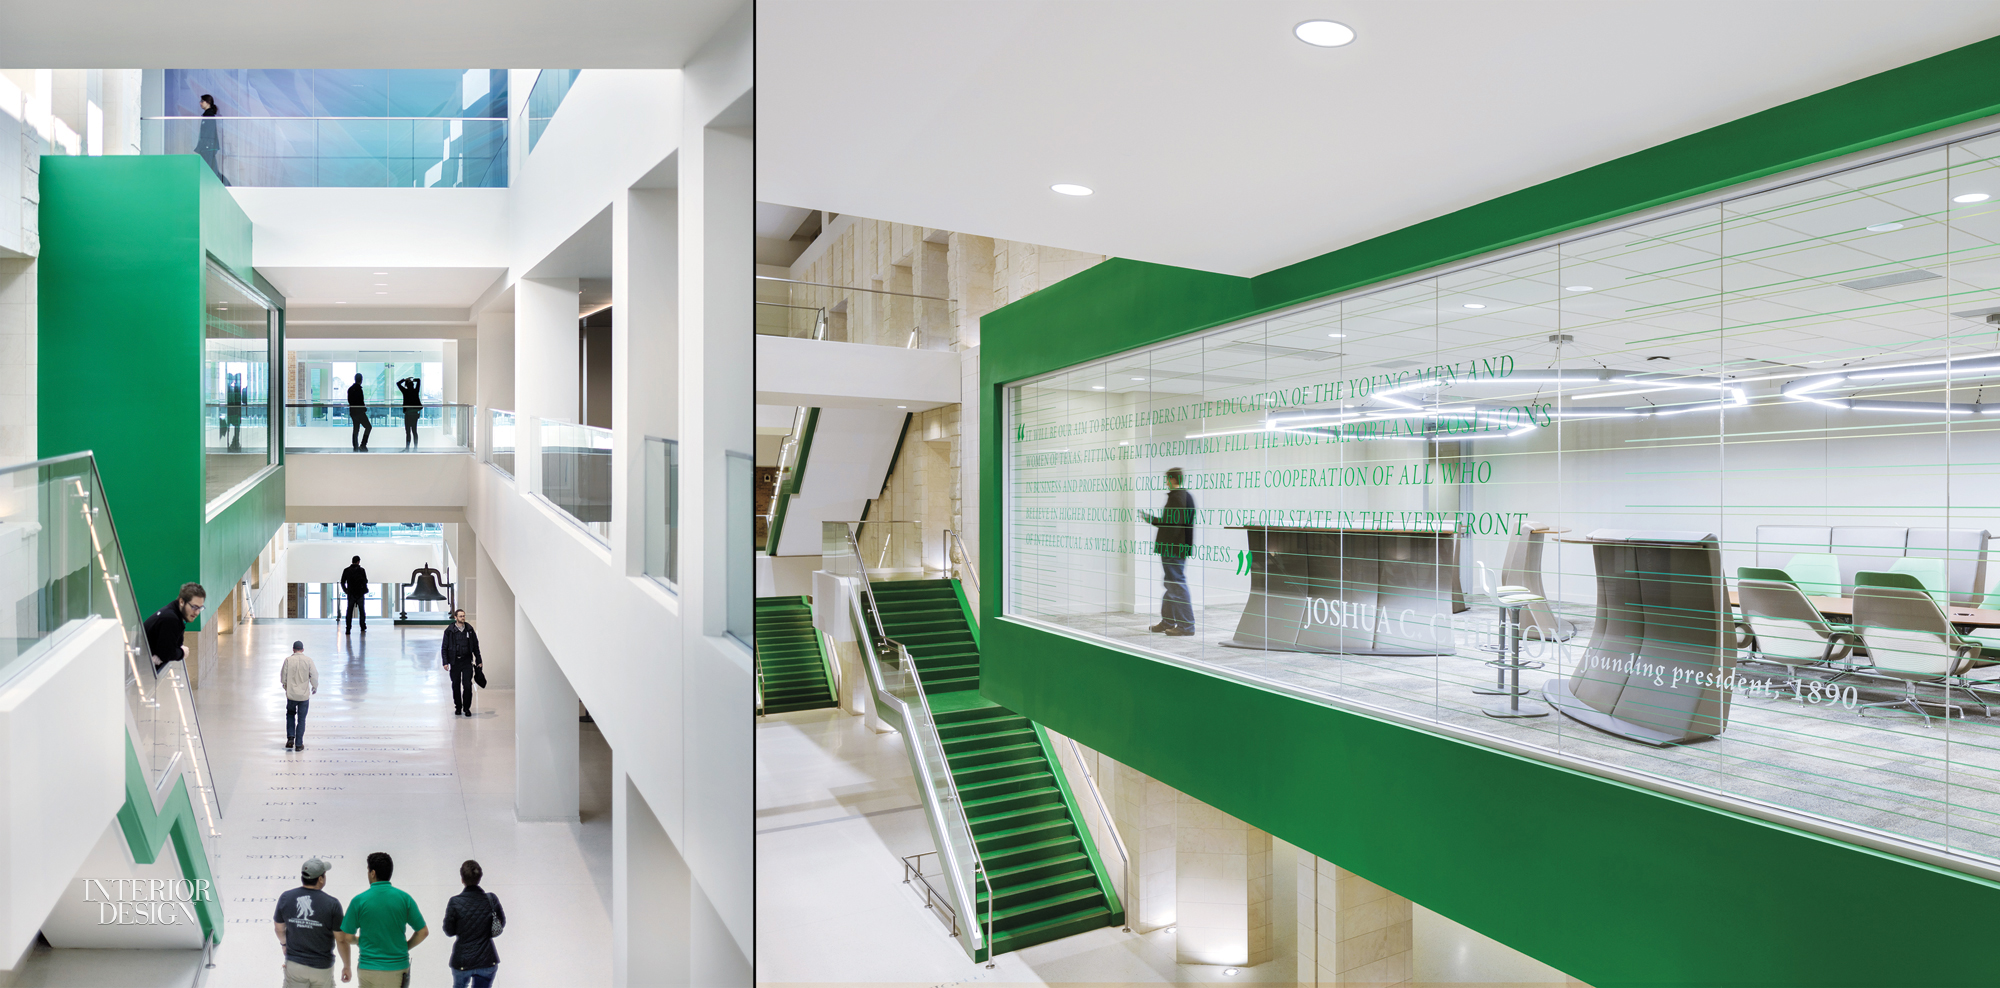 8 Simply Amazing University Buildings Interior Design